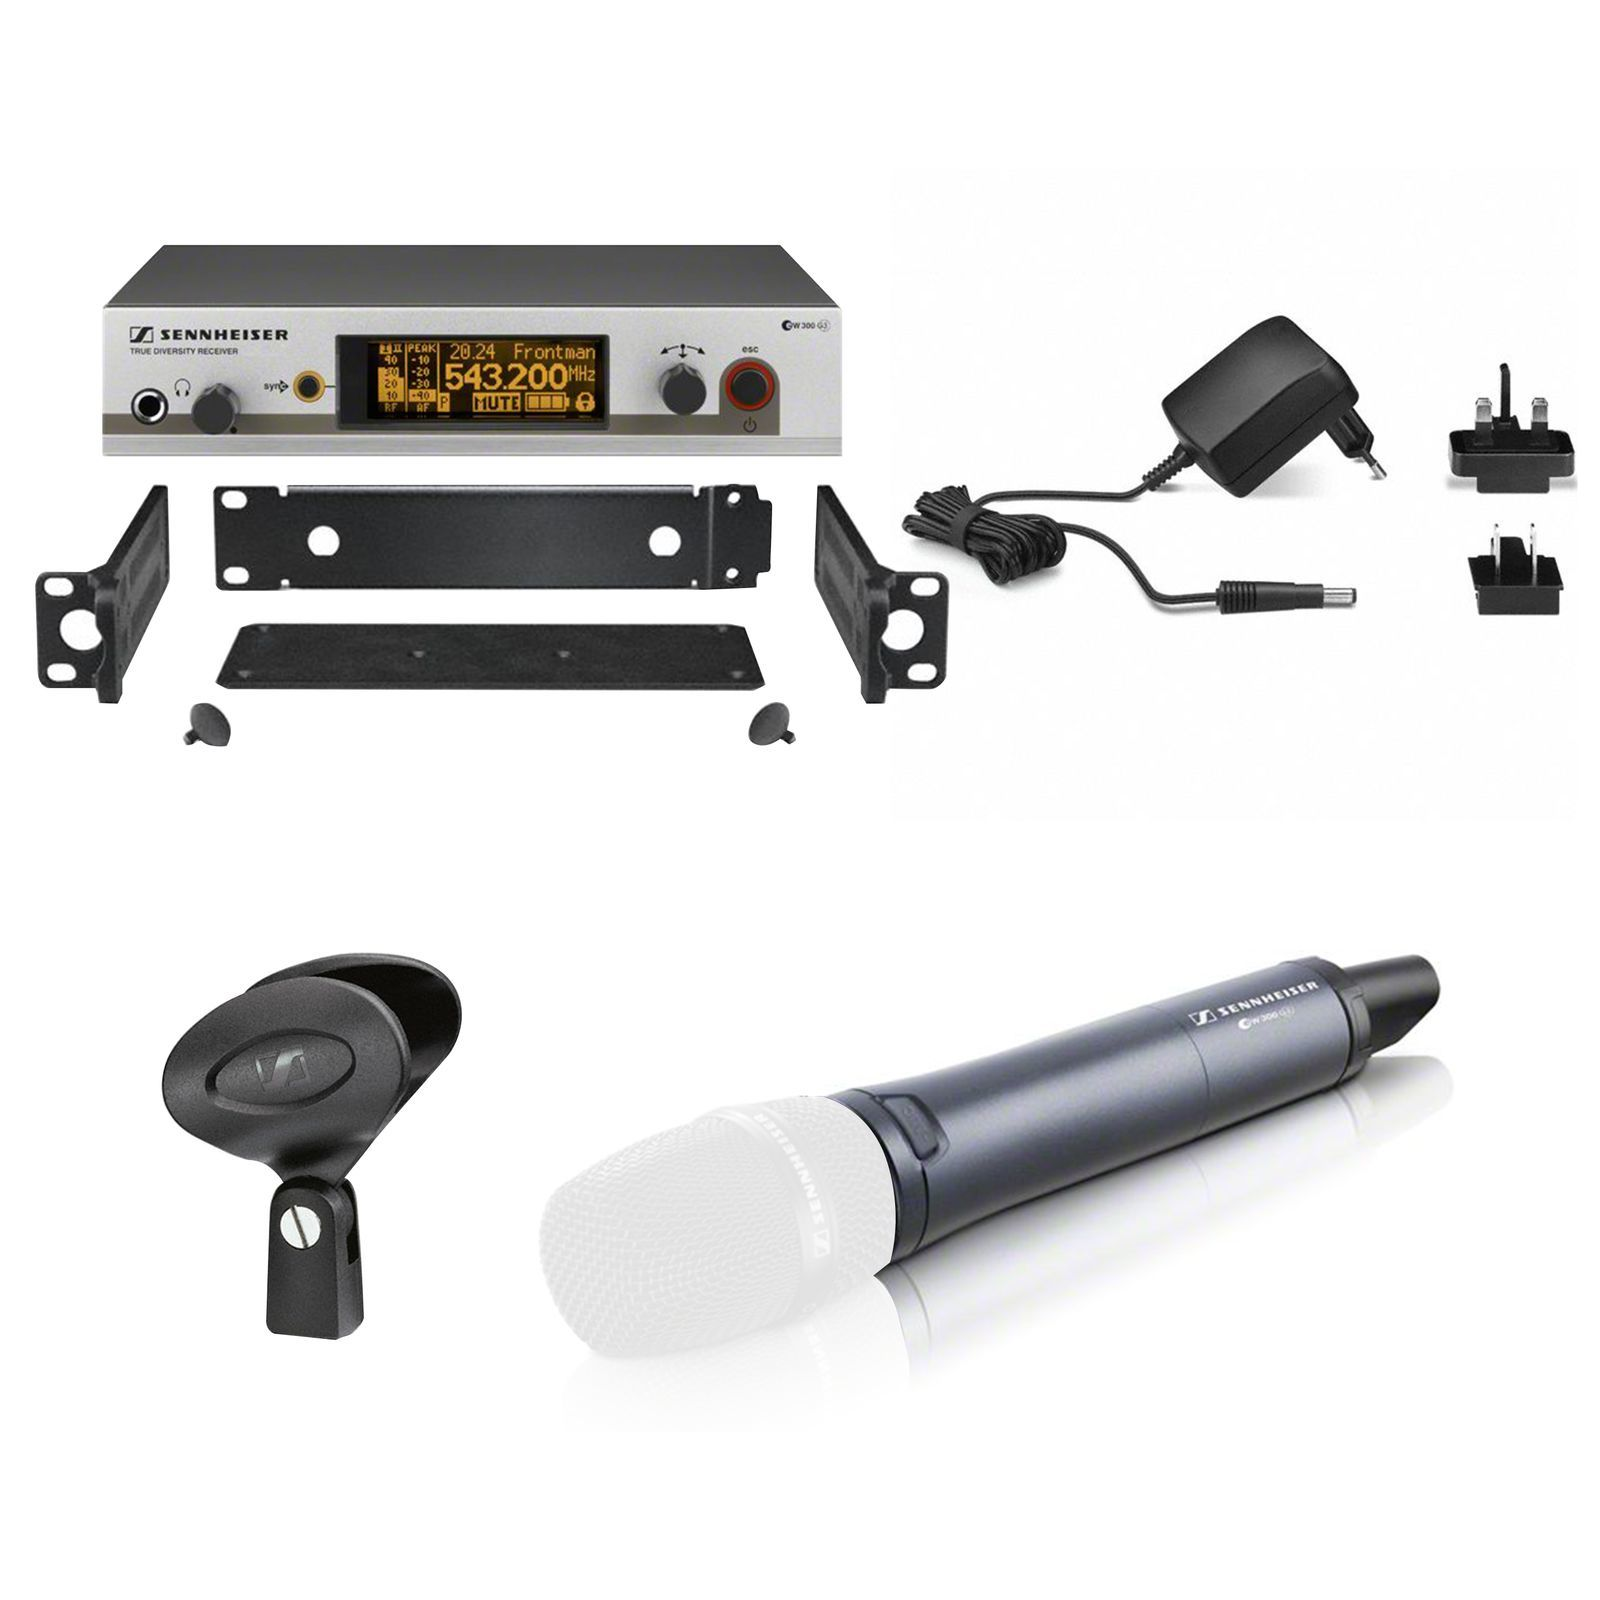 Sennheiser ew 300 Set SKM - B G3 B-Band without capsule Product Image